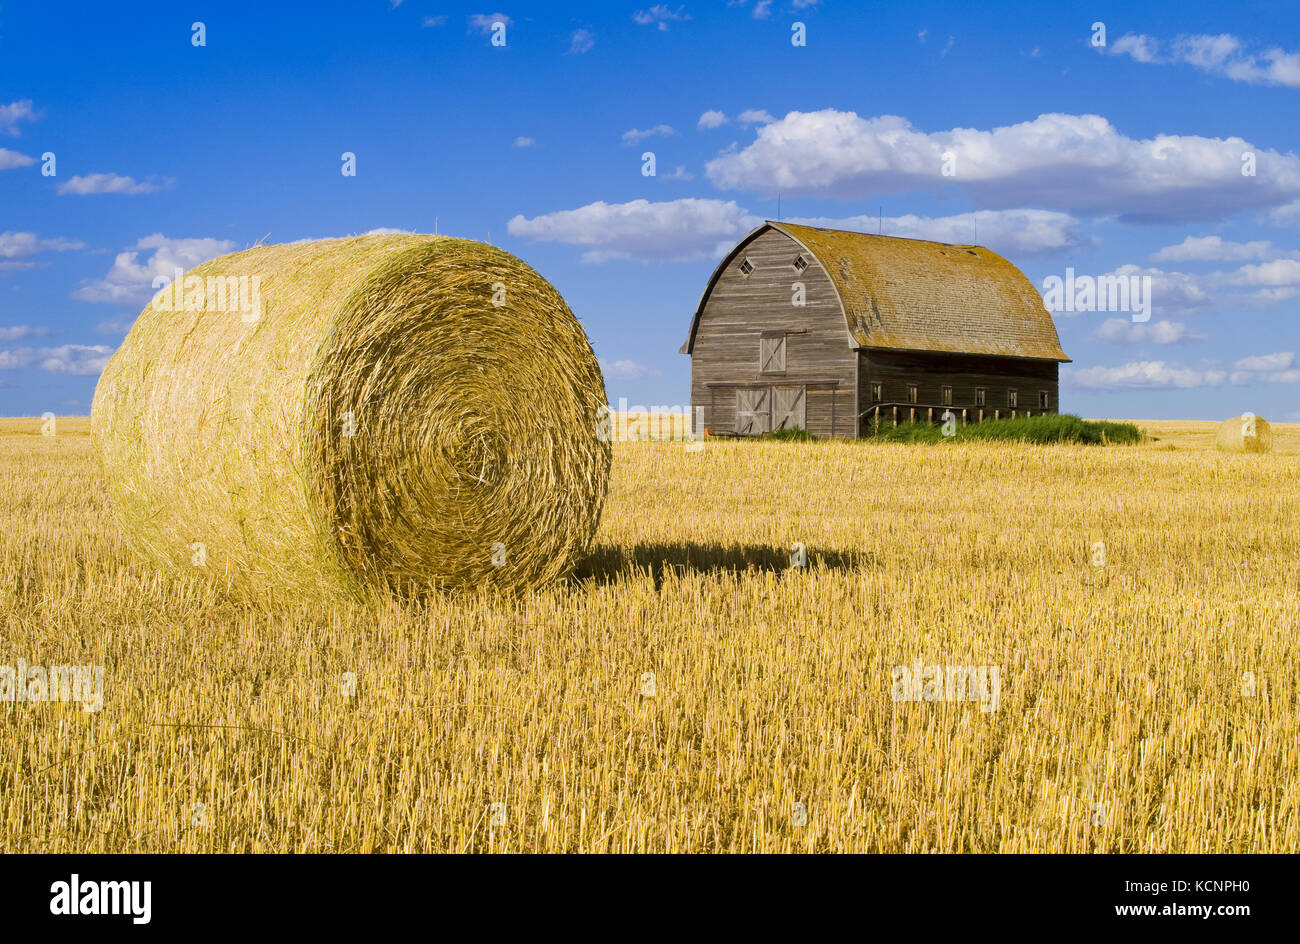 old barn and round durum wheat straw bale near Ponteix, Saskatchewan, Canada - Stock Image